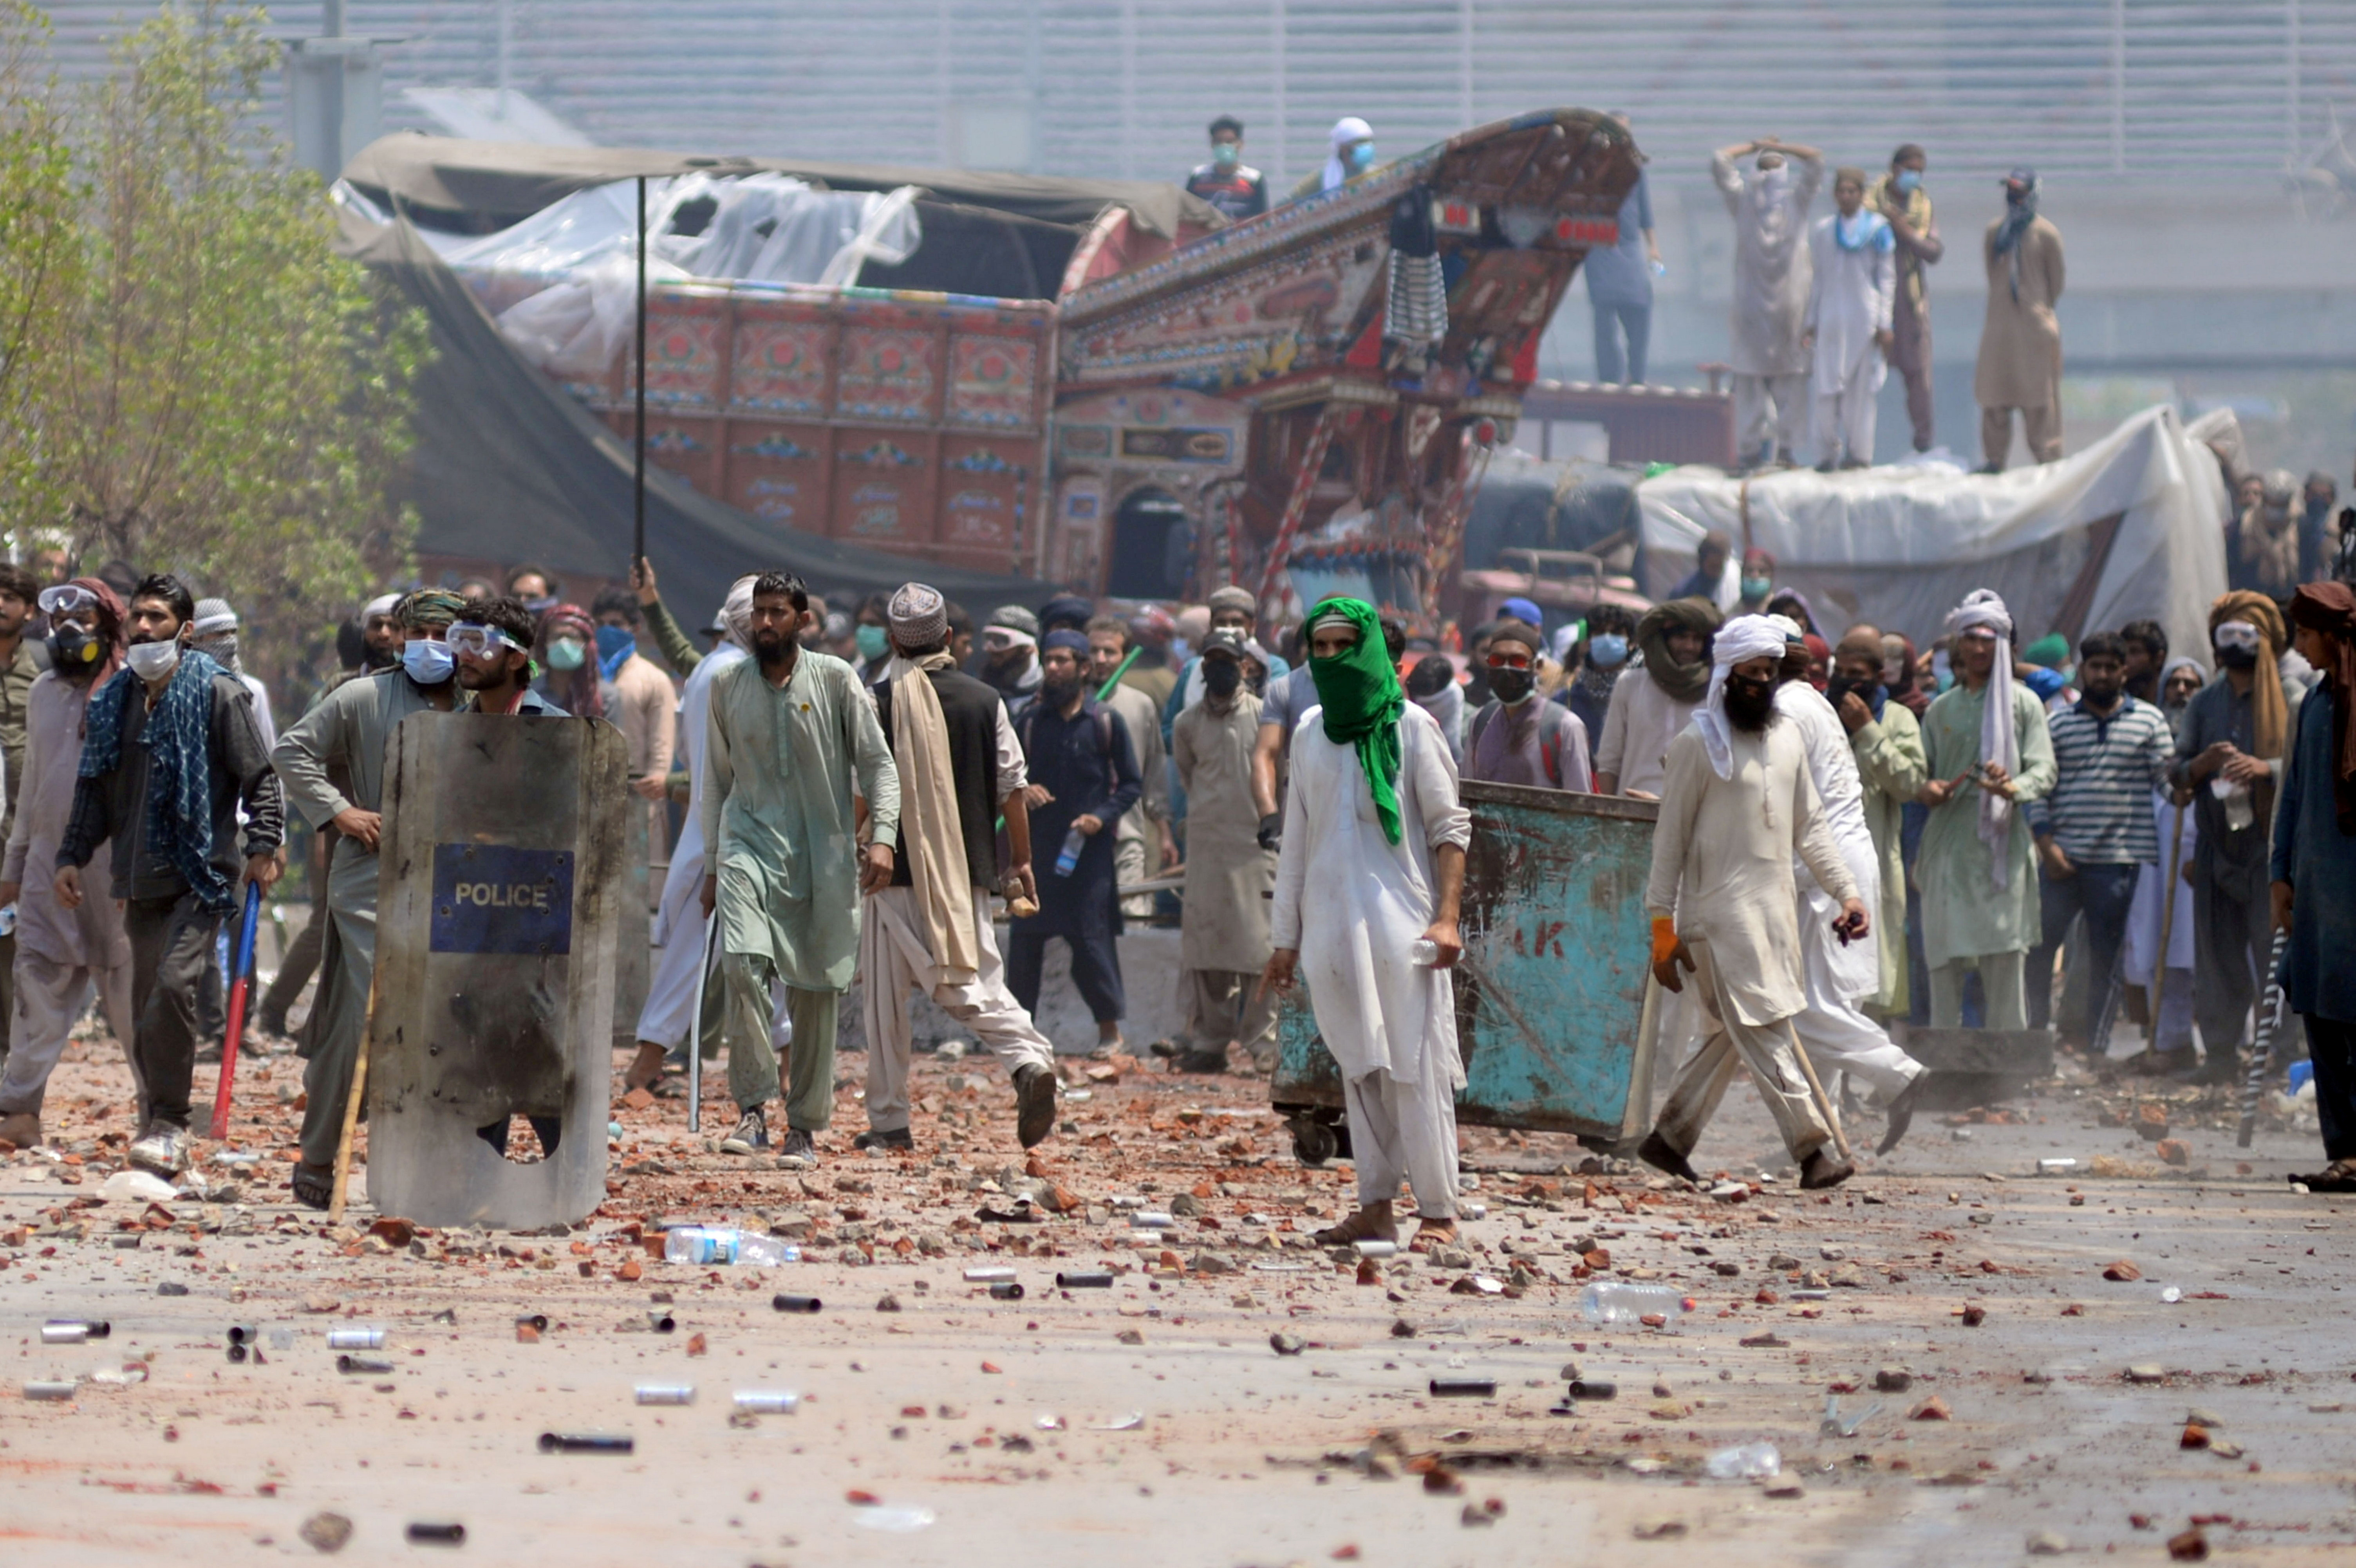 Supporters of the banned Islamist political party Tehrik-e-Labaik Pakistan (TLP) with sticks and stones block a road during a protest in Lahore, Pakistan April 18, 2021. REUTERS/Stringer/File Photo